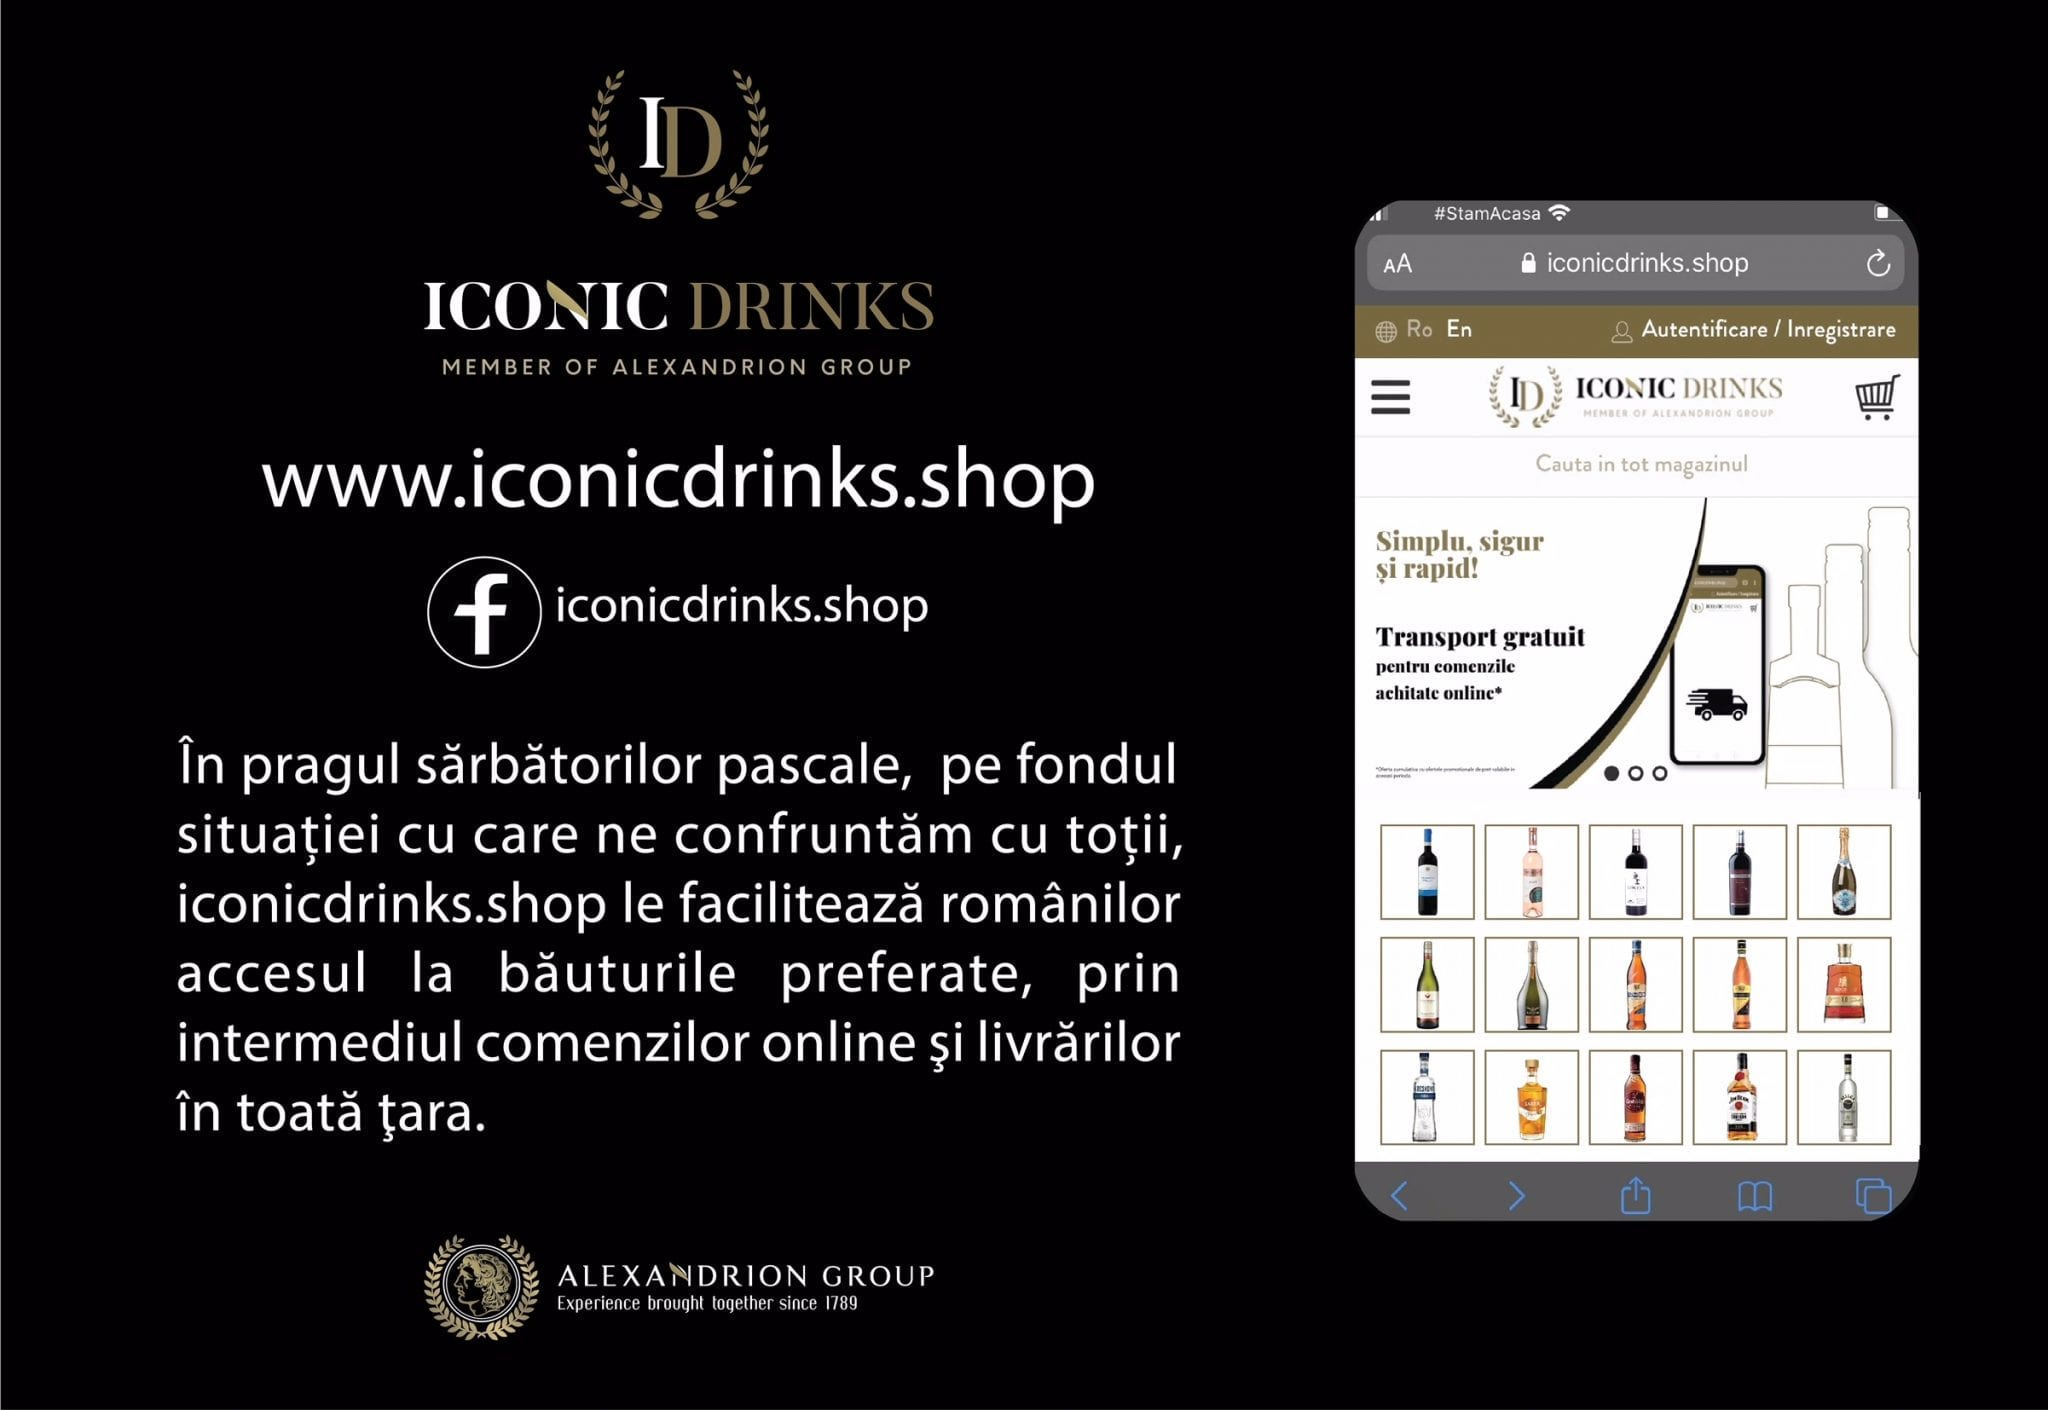 iconicdrinks.shop